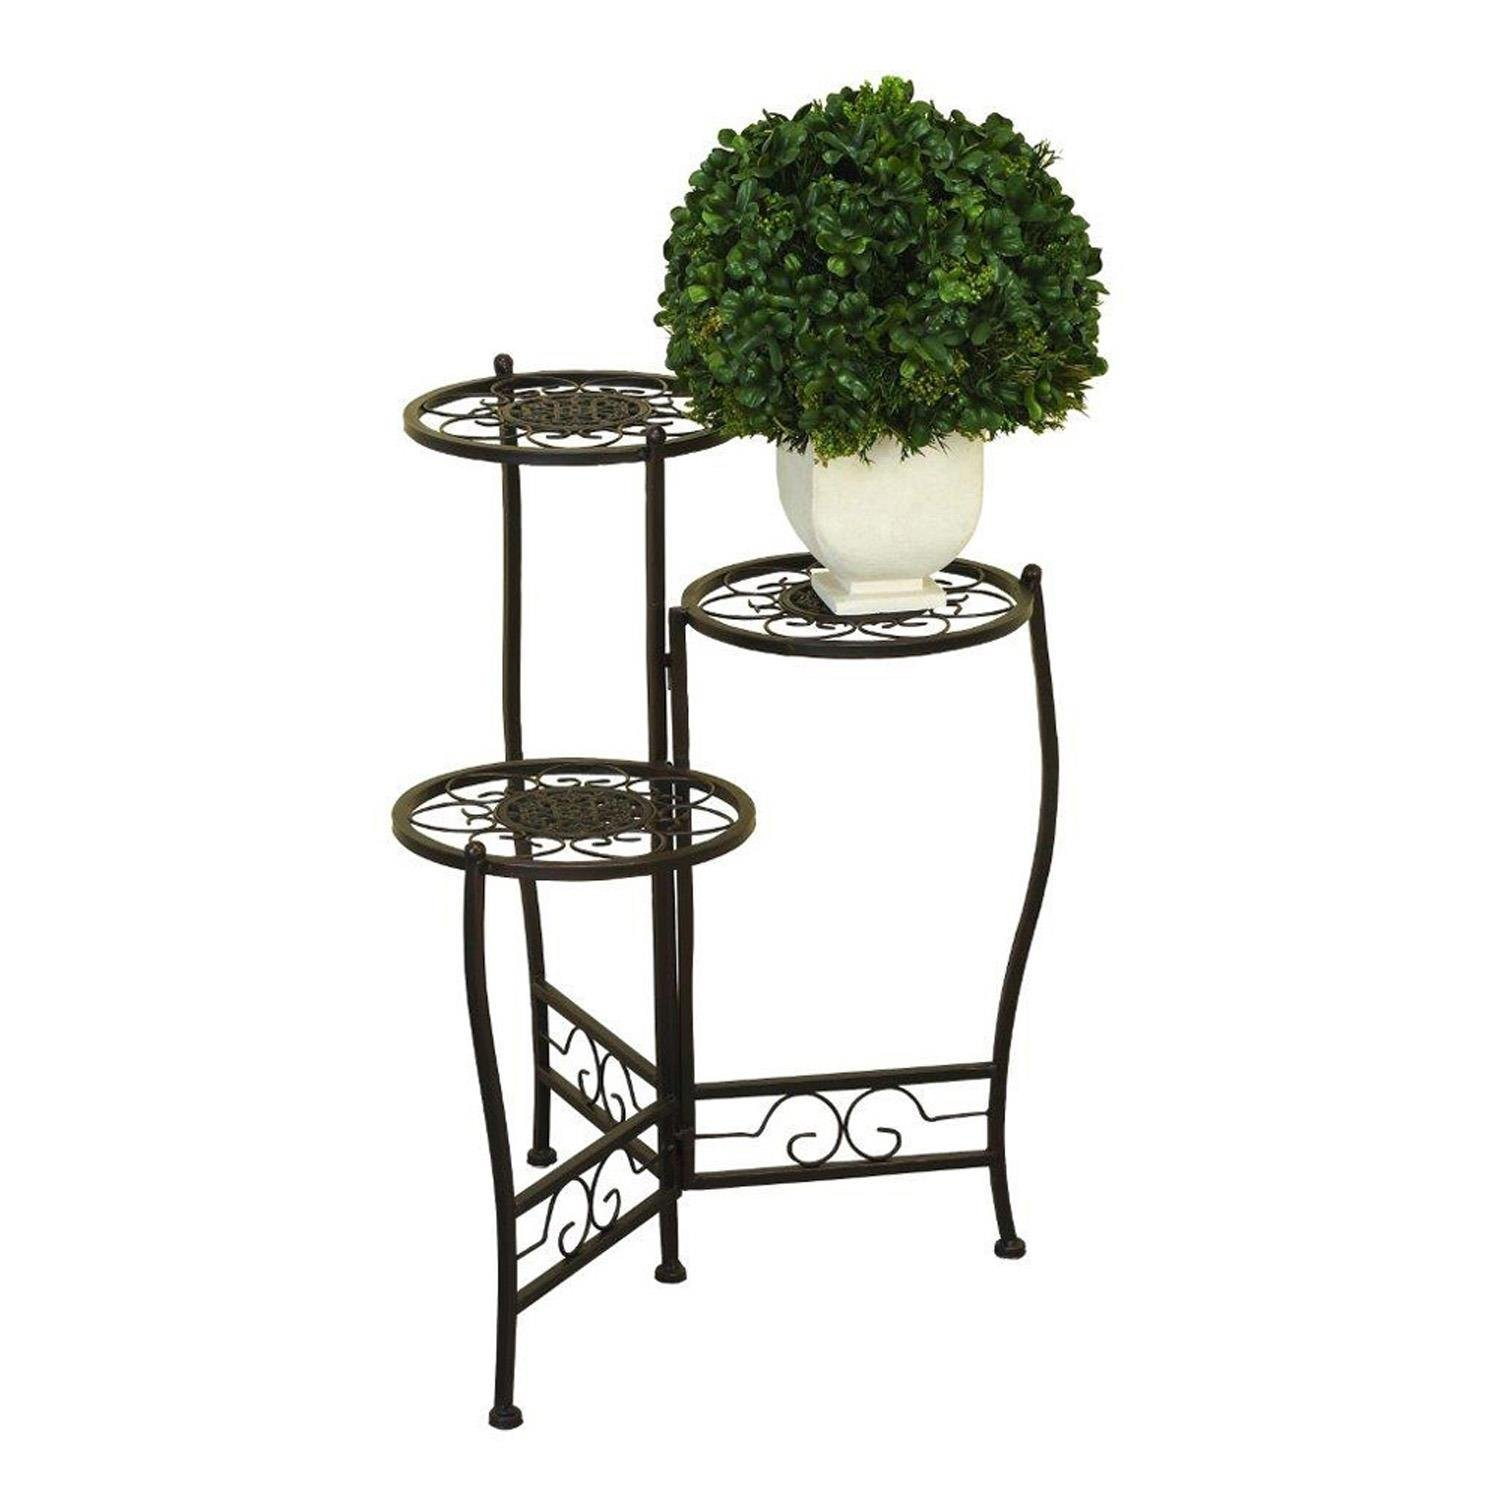 Nesting Plant Stand 3 Tier Iron Black Flower Home Decor